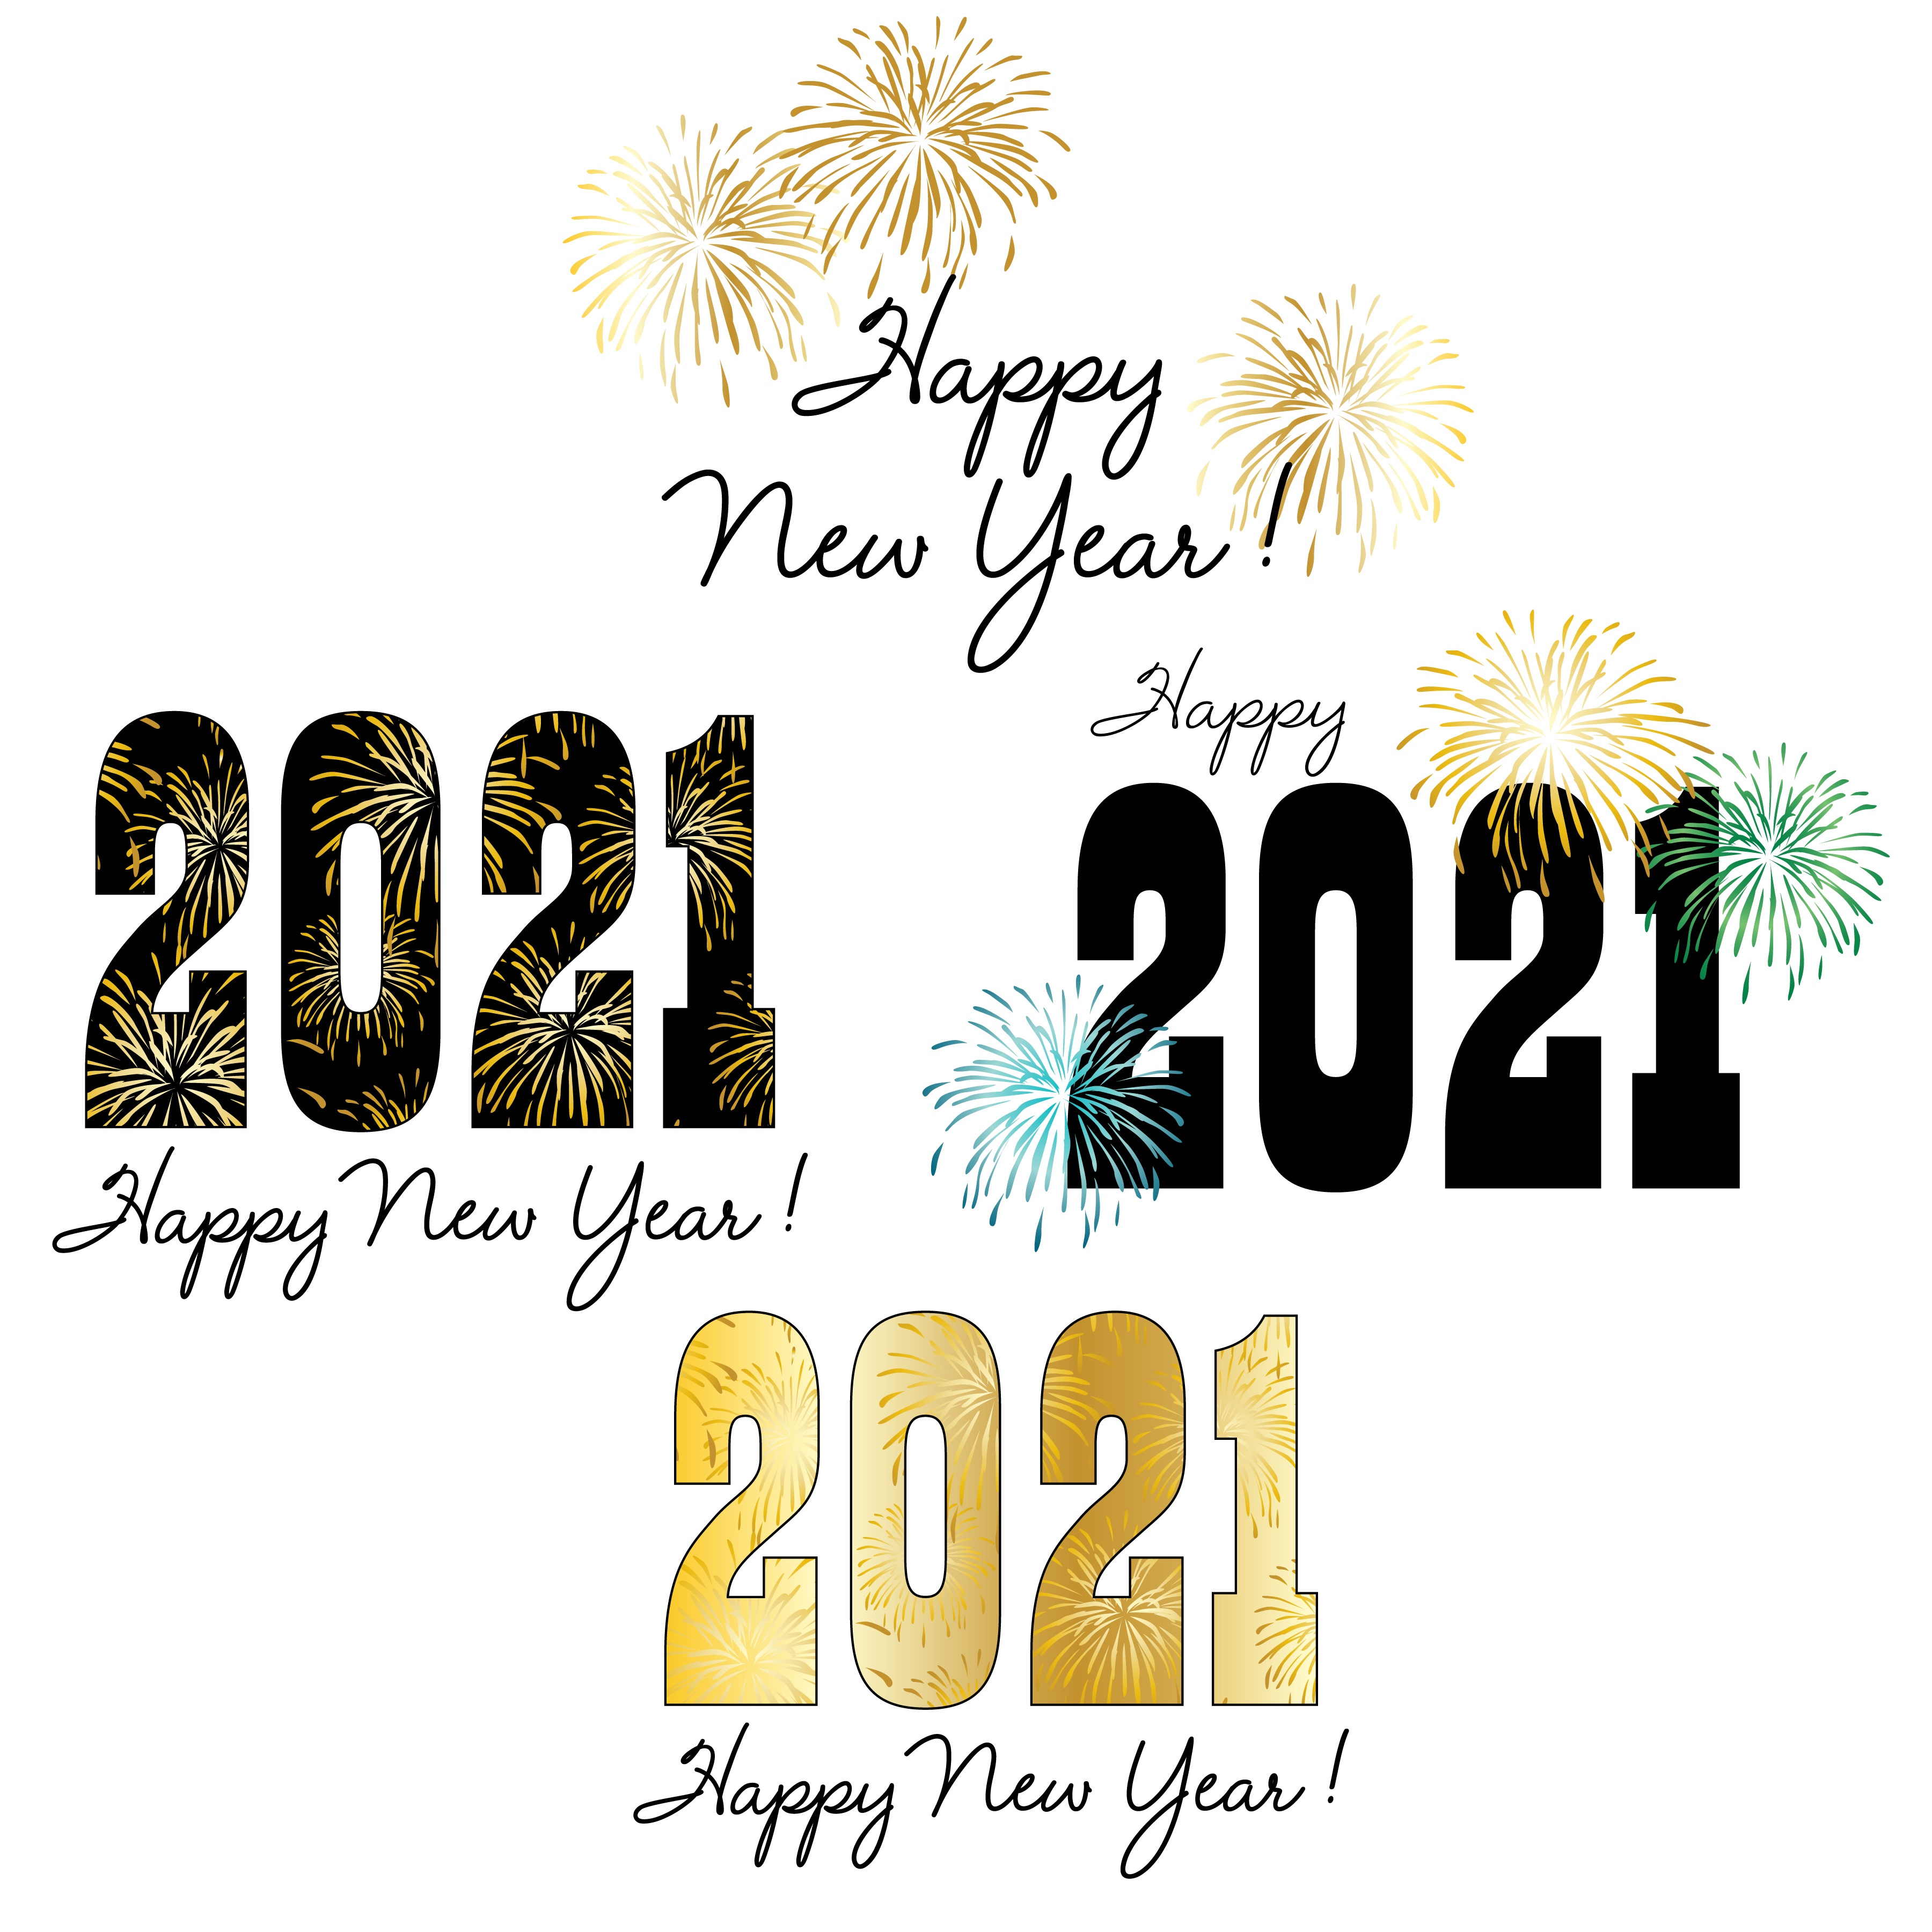 2021 new year typography and graphics with fireworks download free vectors clipart graphics vector art https www vecteezy com vector art 1330083 2021 new year typography and graphics with fireworks